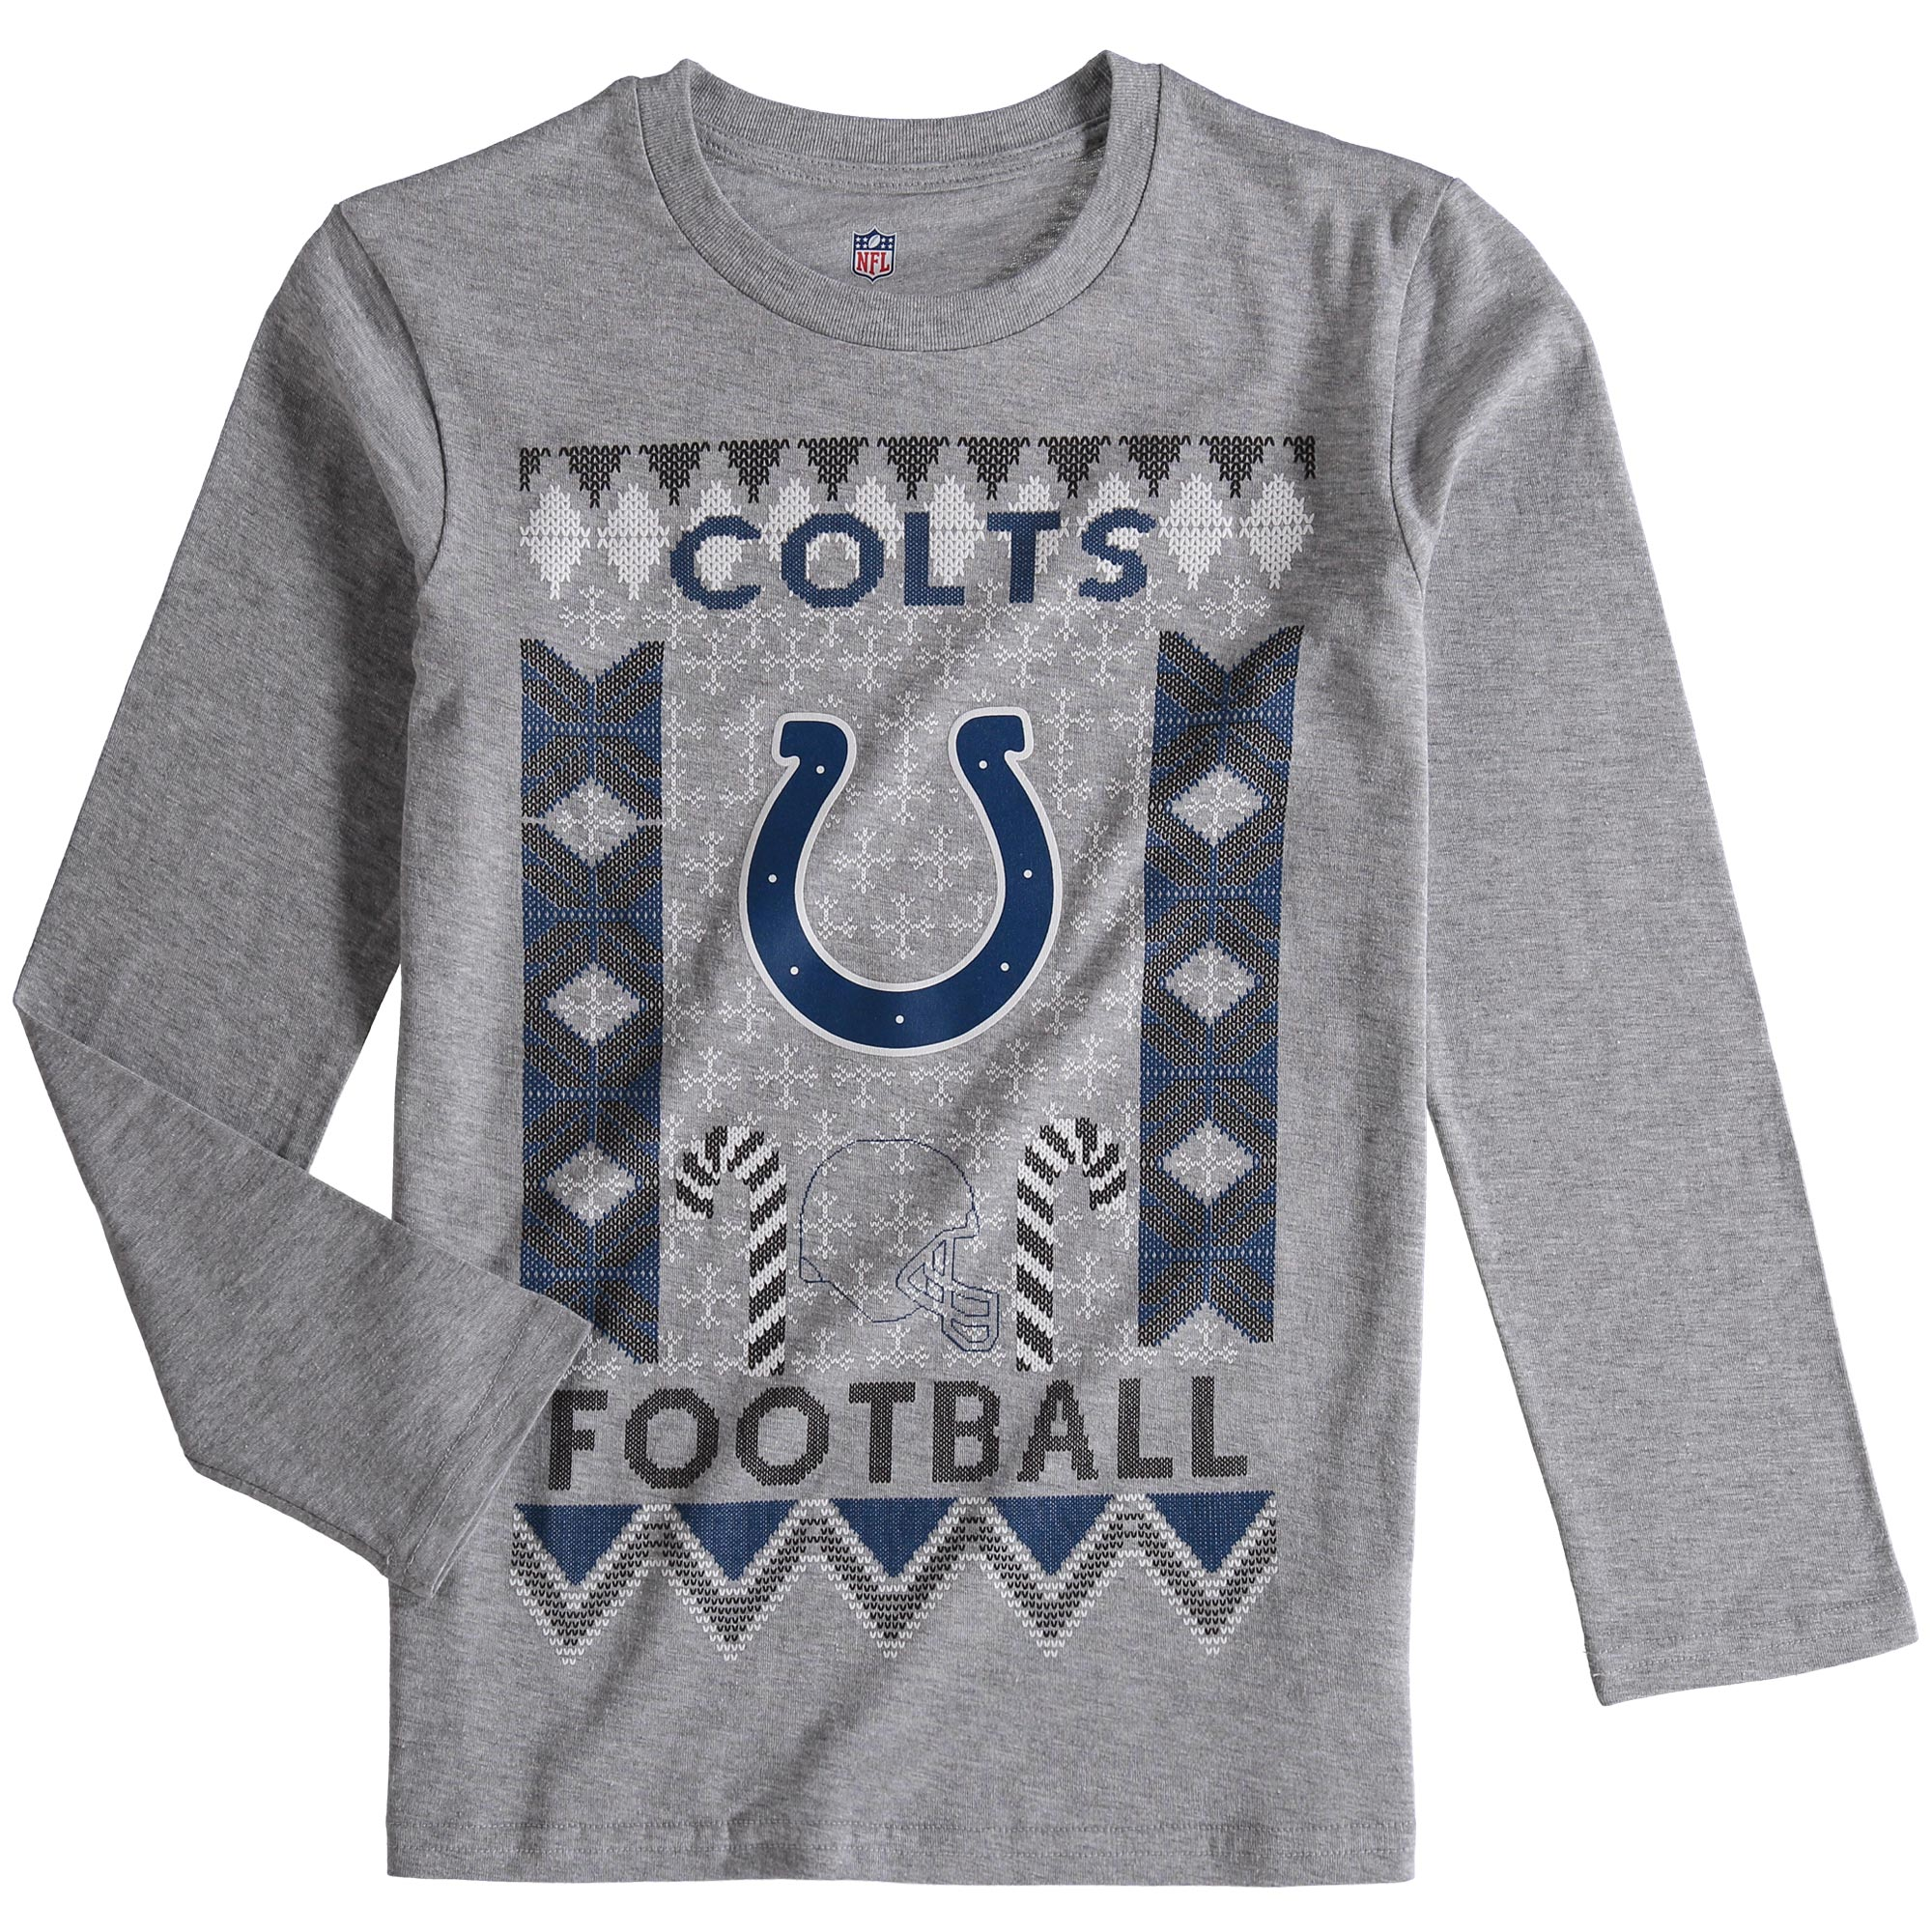 Indianapolis Colts Youth Blizzard Long Sleeve T-Shirt - Heathered Gray